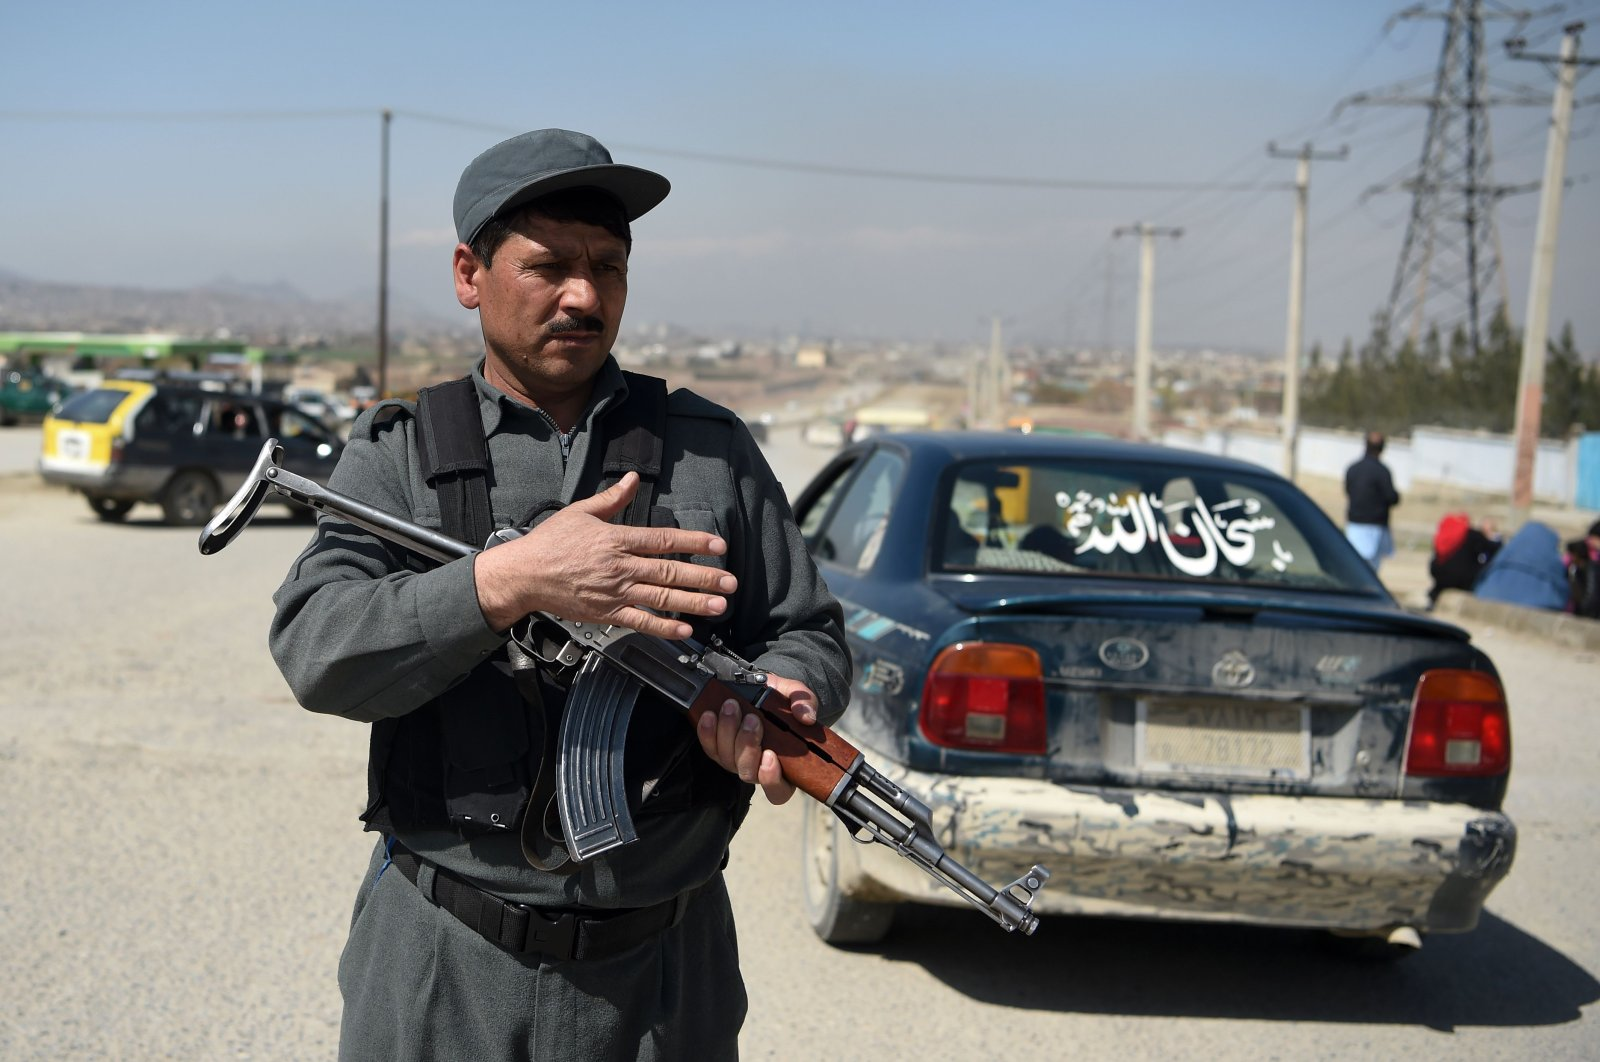 Police officer gestures as cars are stopped and searched at a road checkpoint in Kabul, Afghanistan, March 22, 2020. (AFP Photo)